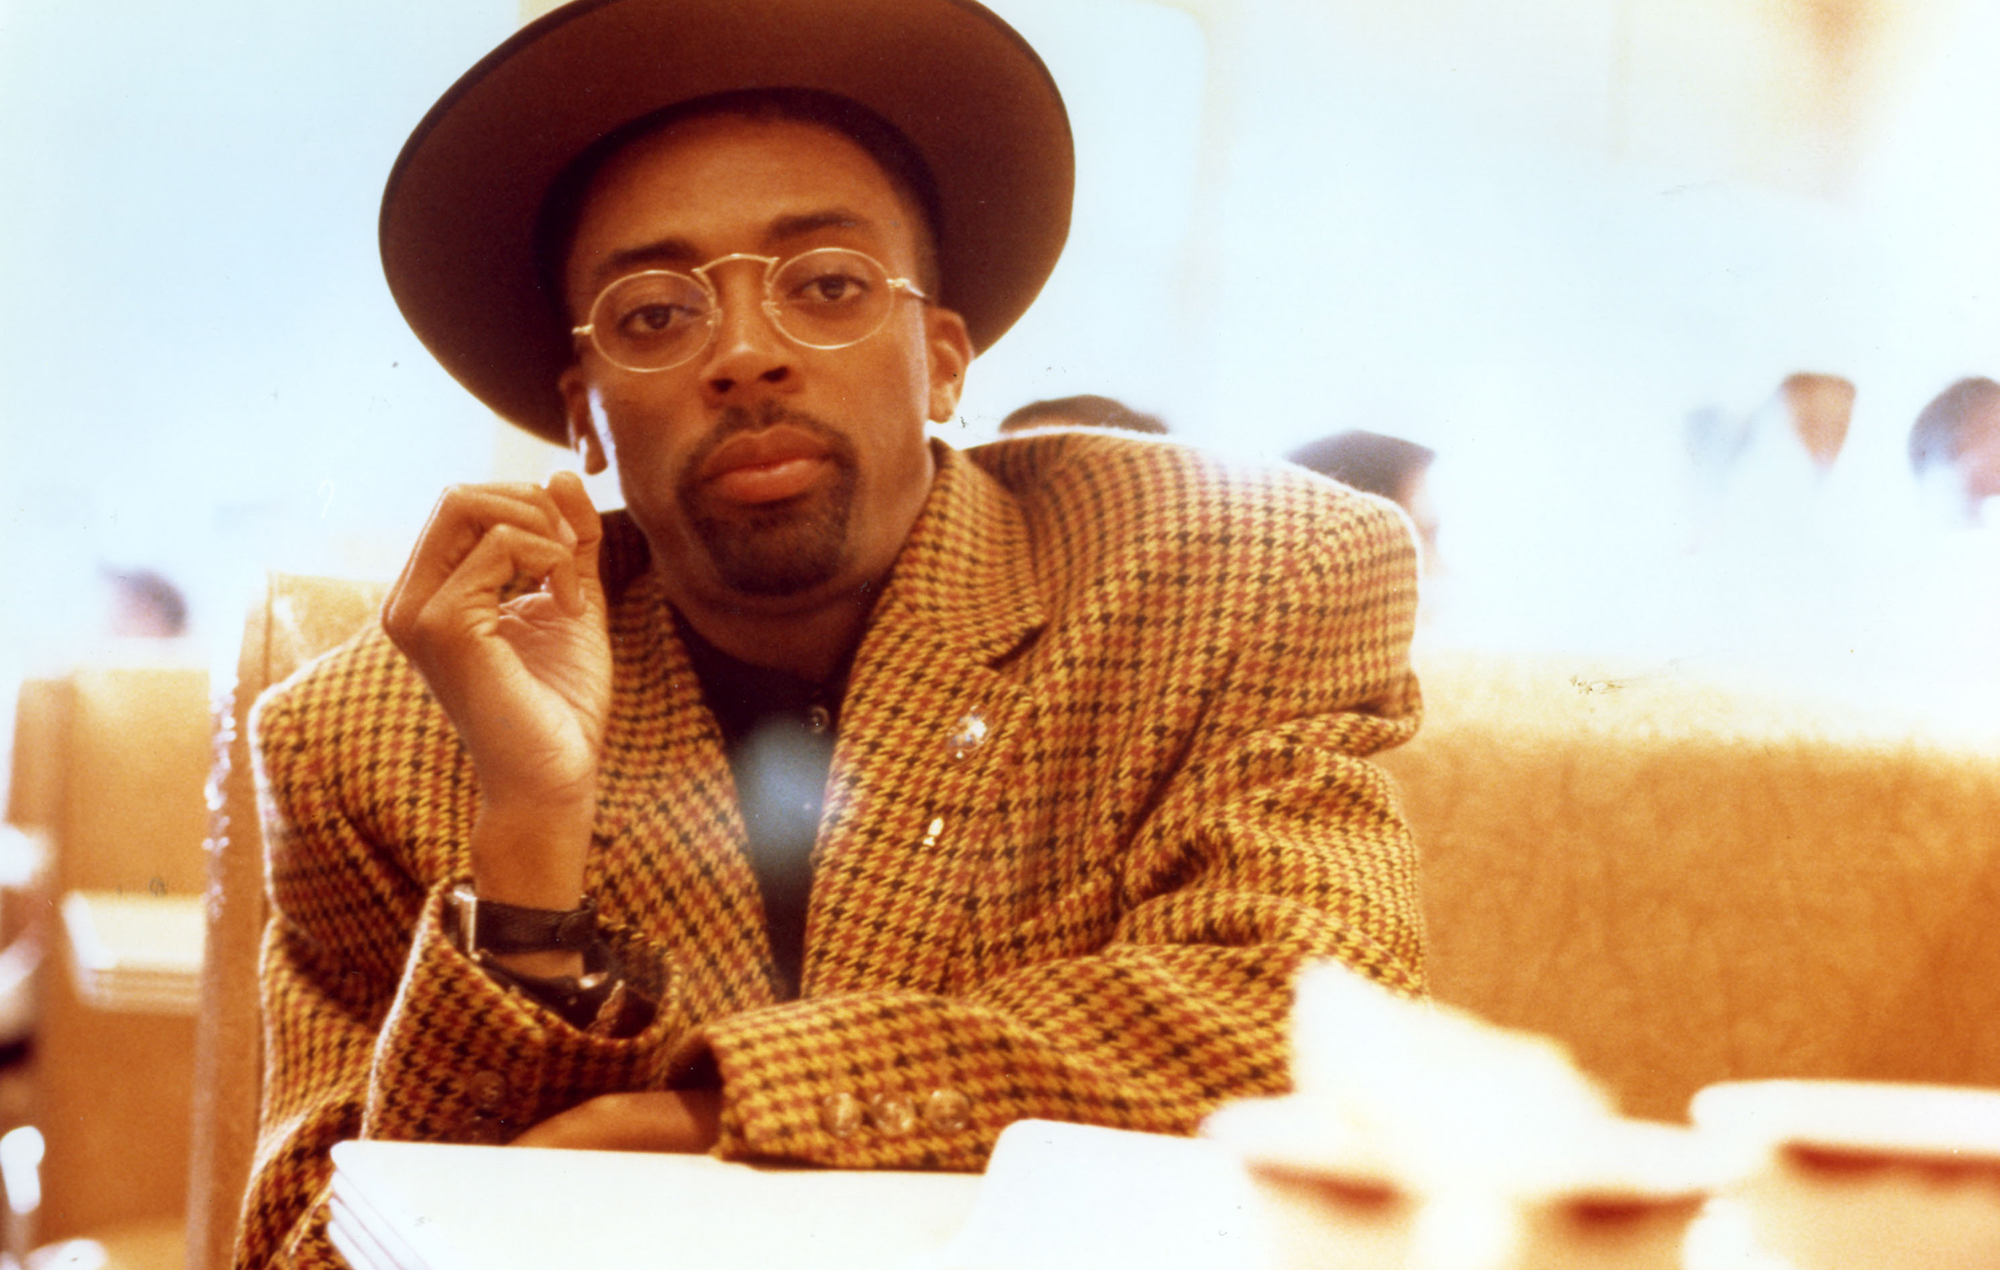 Spike Lee movies: the iconic director's 10 best films